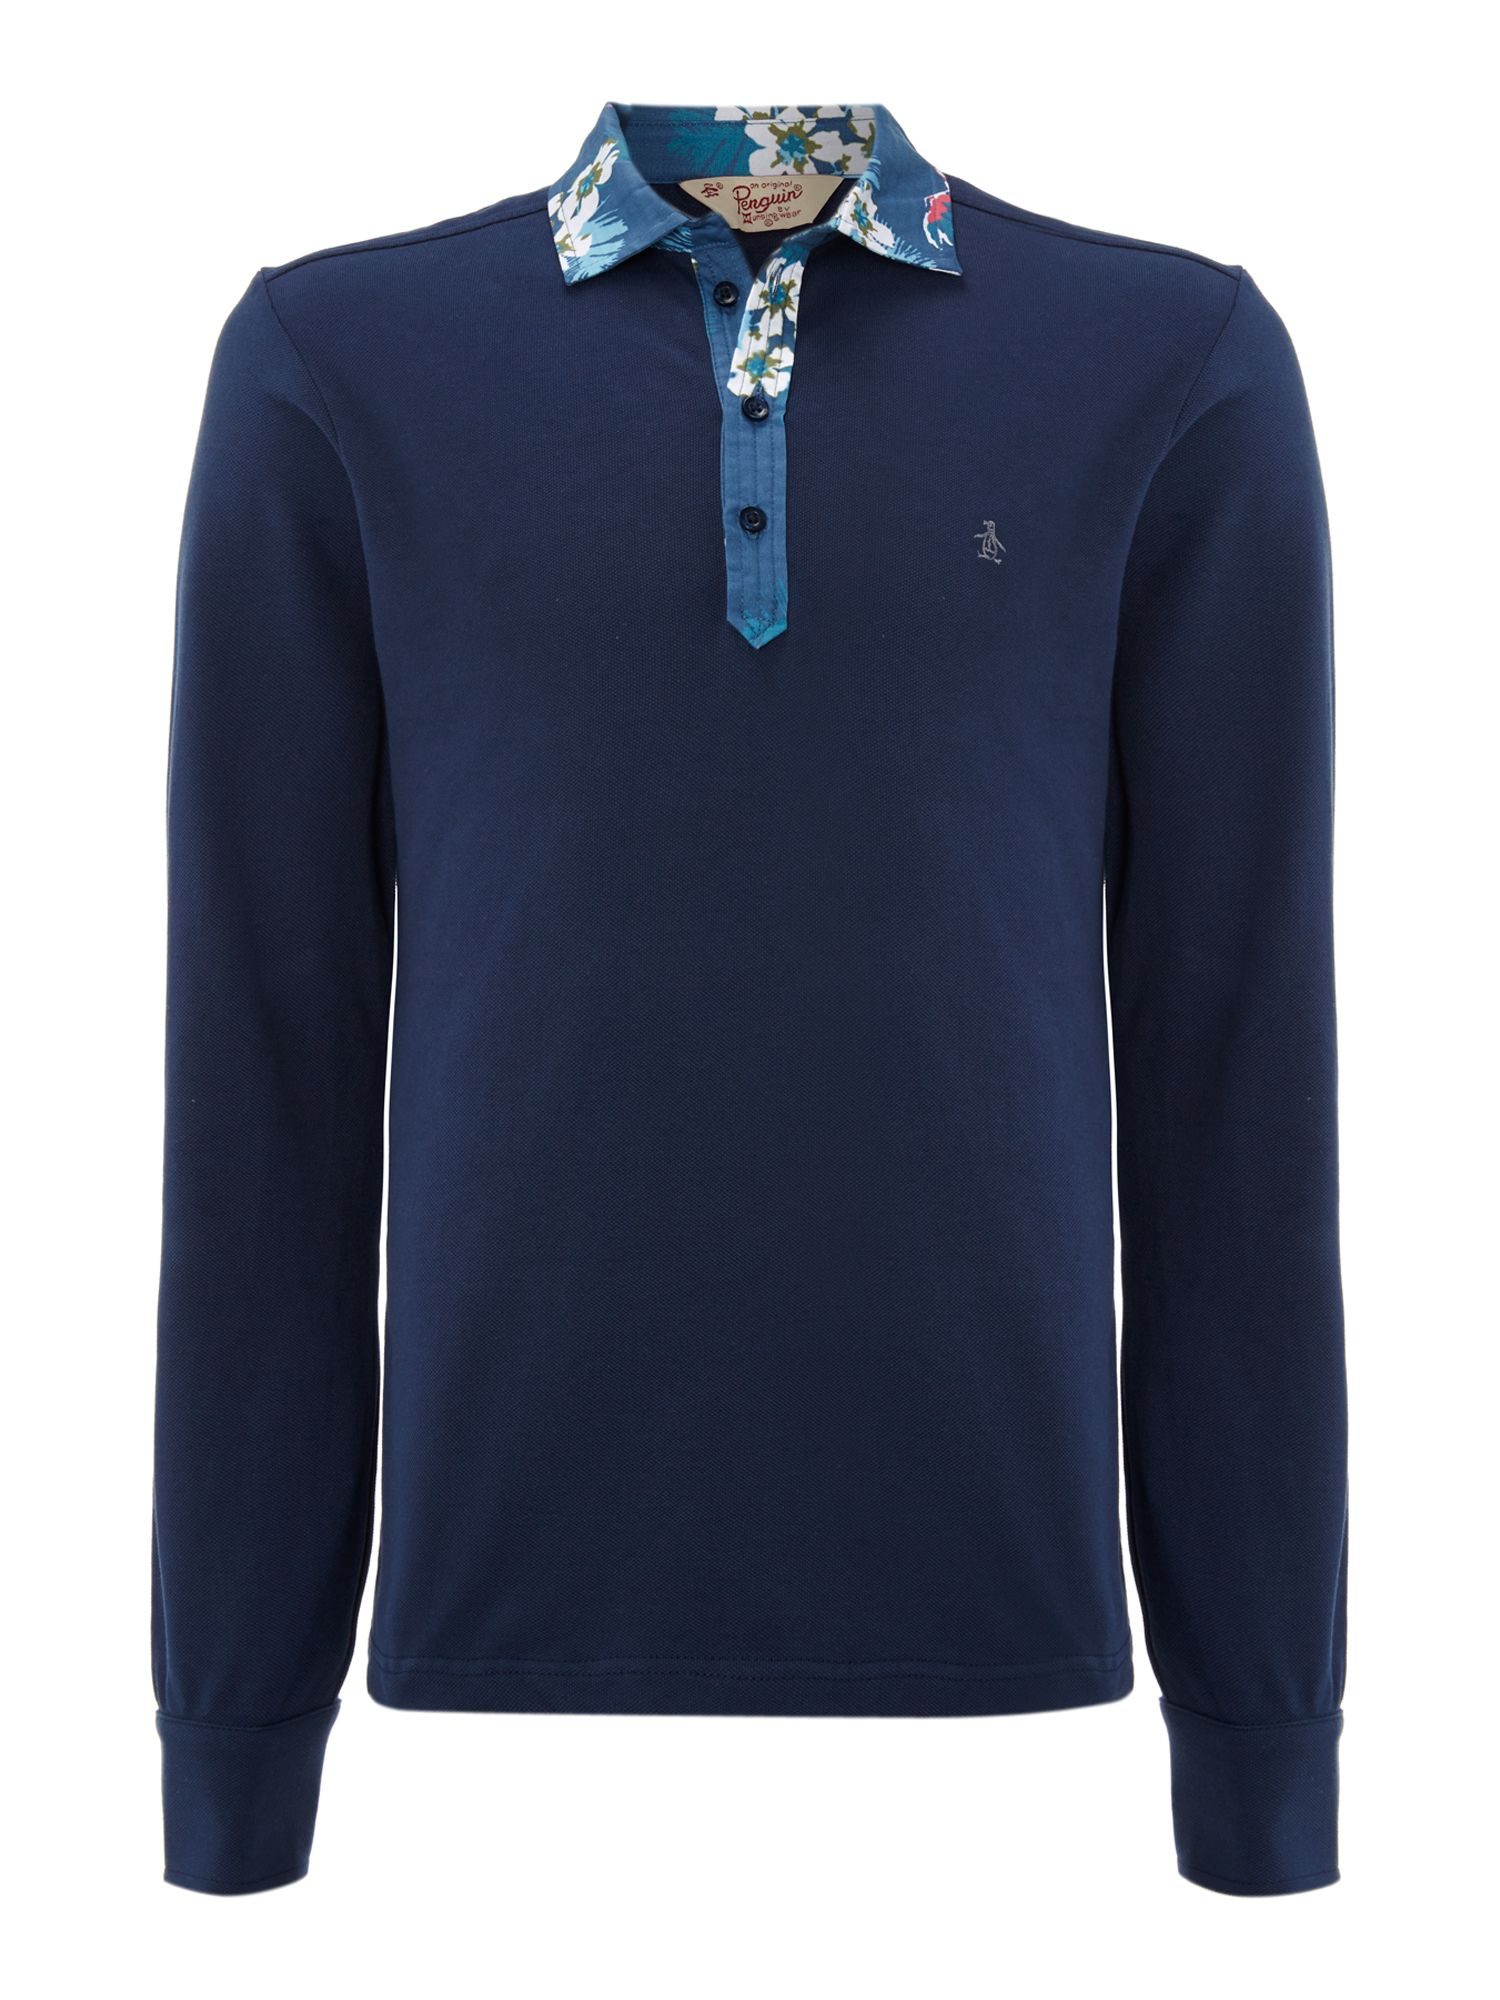 Long sleeve polo shirt with woven print detail